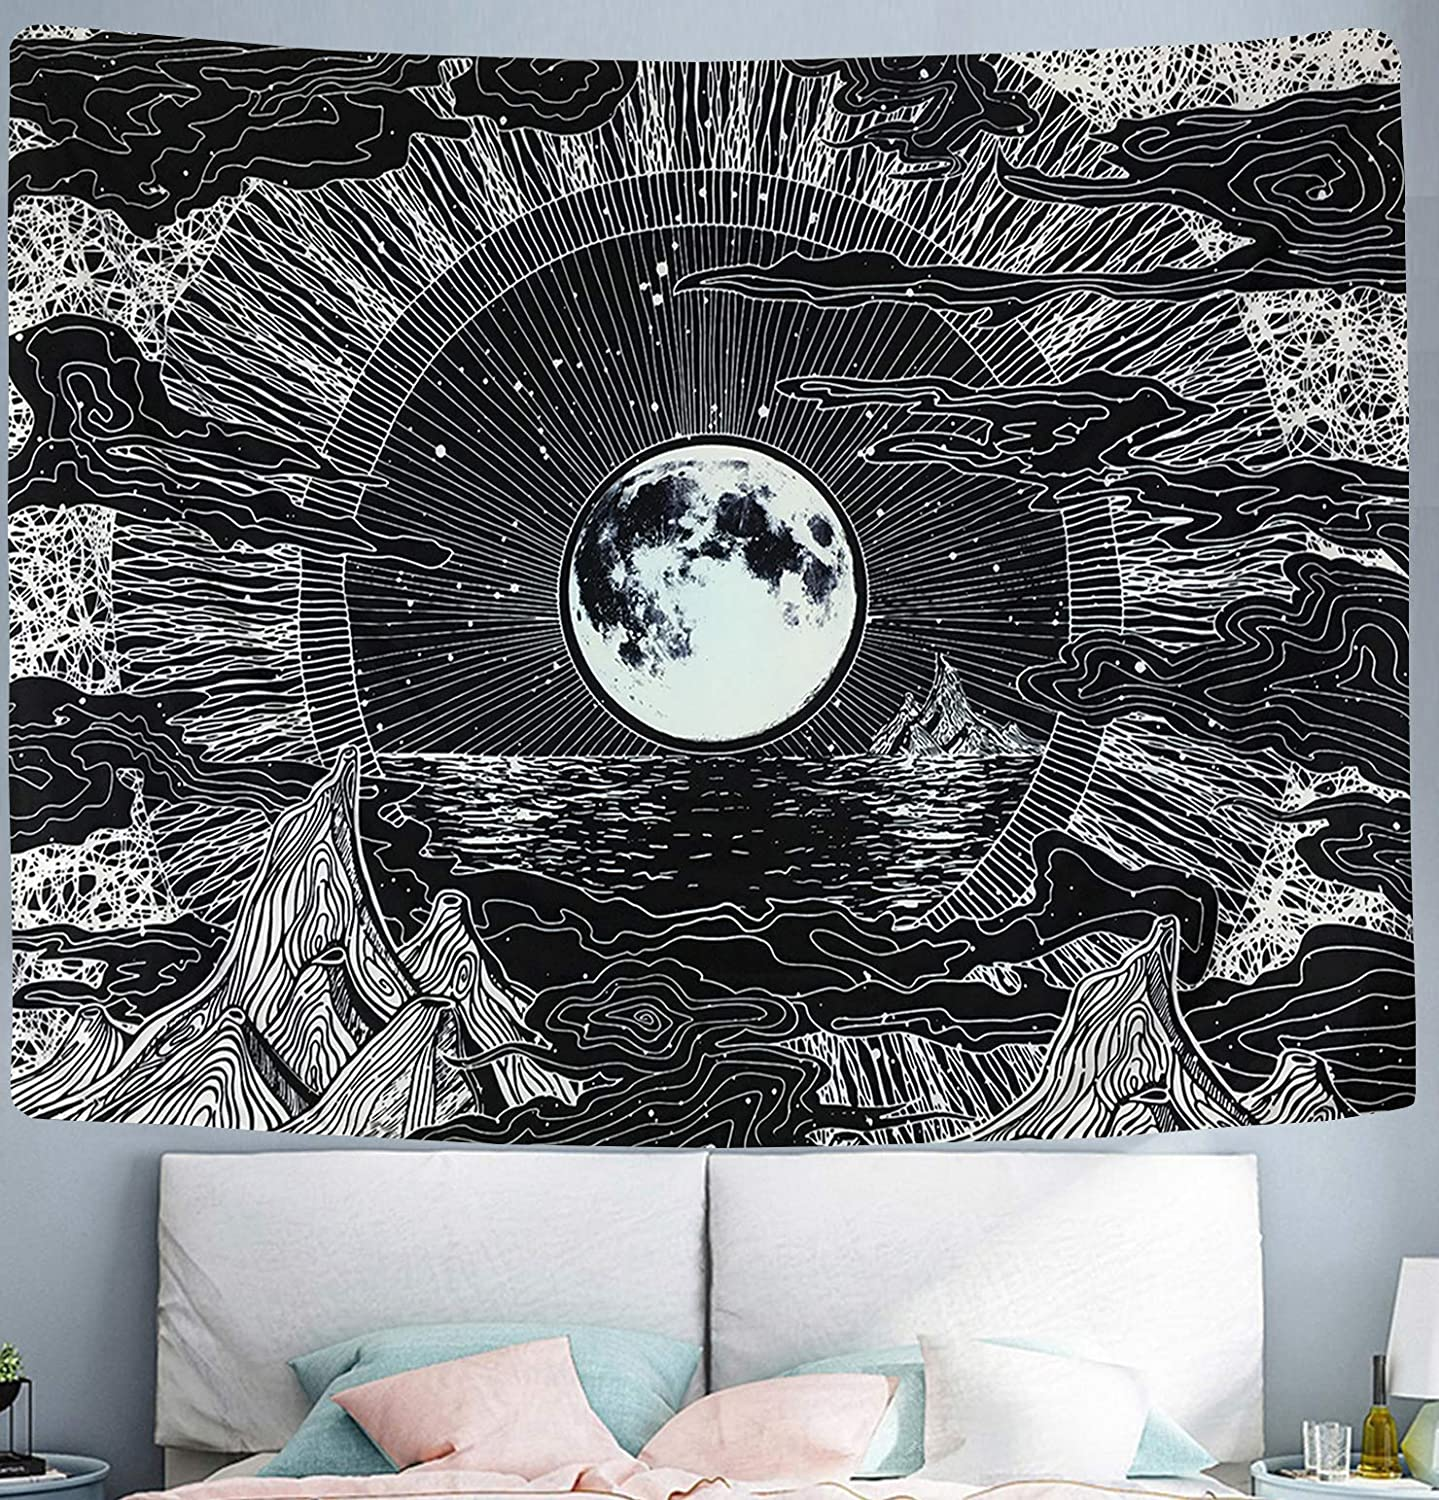 """Wekymuu Moon and Star Tapestry Black and White Tapestry Psychedelic Mountain Tapestry Wall hanging Clouds Tapestry Space Tapestry for Bedroom Dorm Room Decor (moon, 51.2""""x 59.1"""")"""